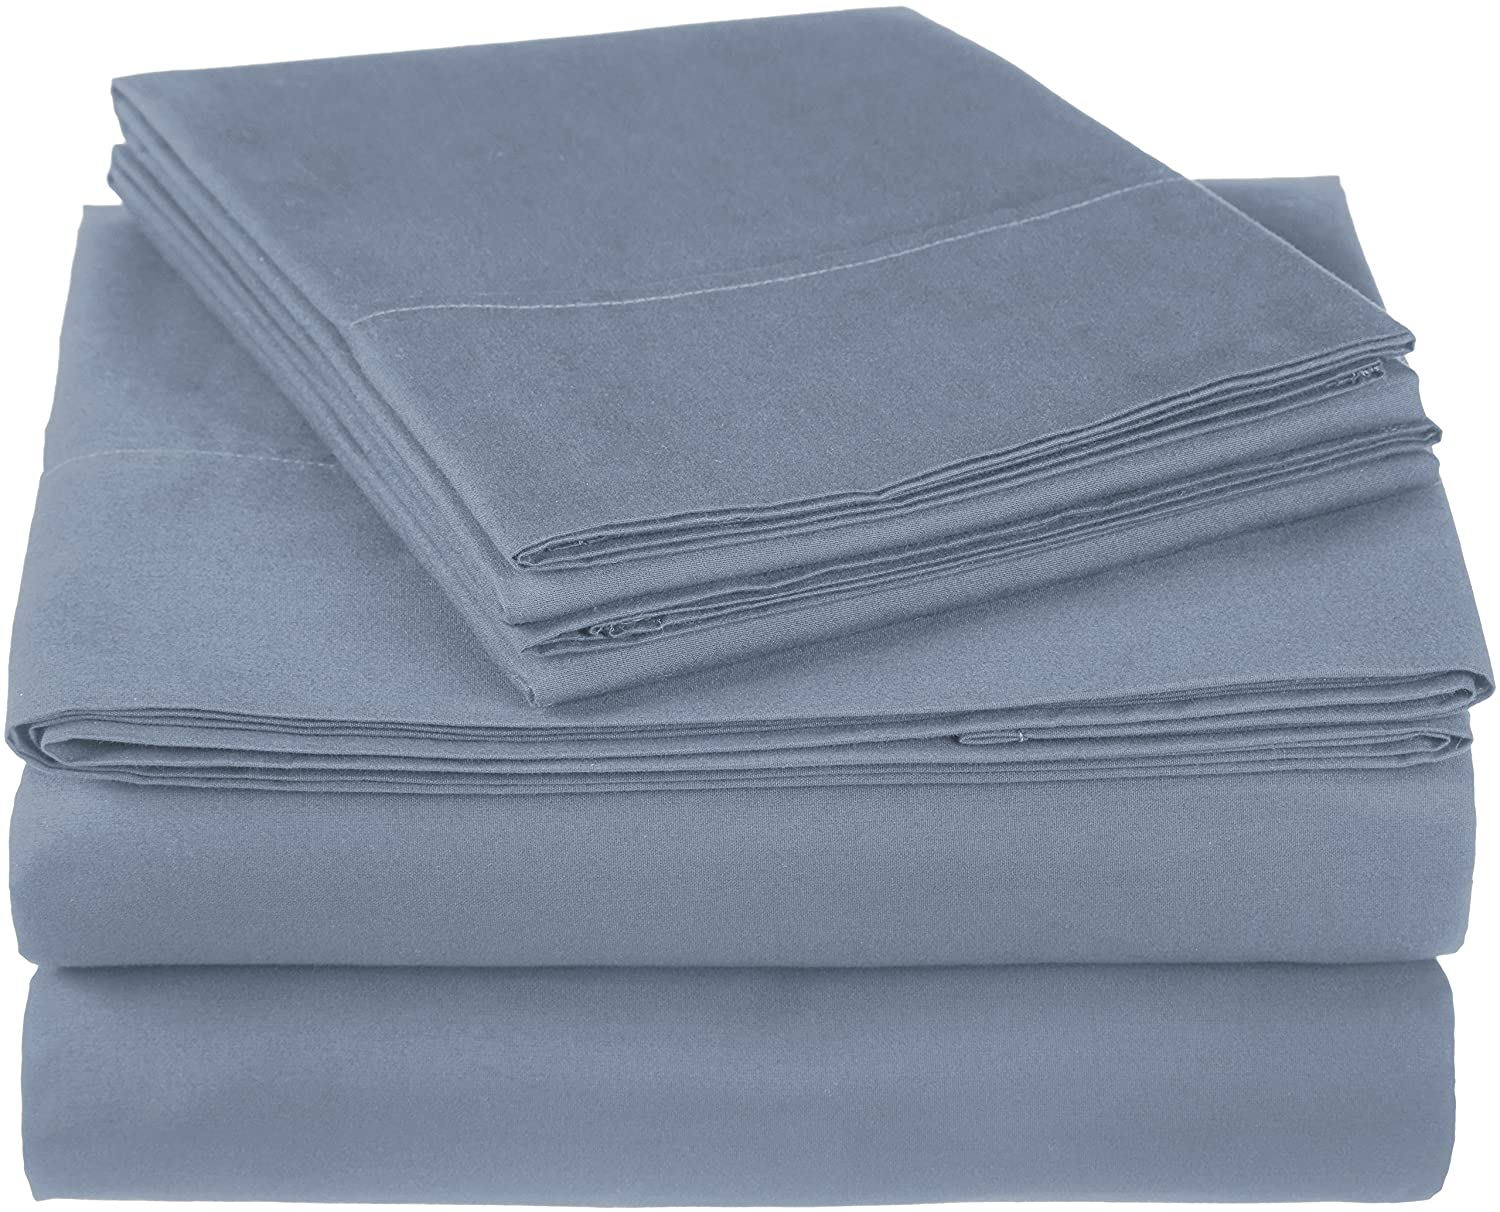 Pinzon 300 Thread Count Ultra Soft Cotton Bed Sheet Set, California King, Dusty Blue